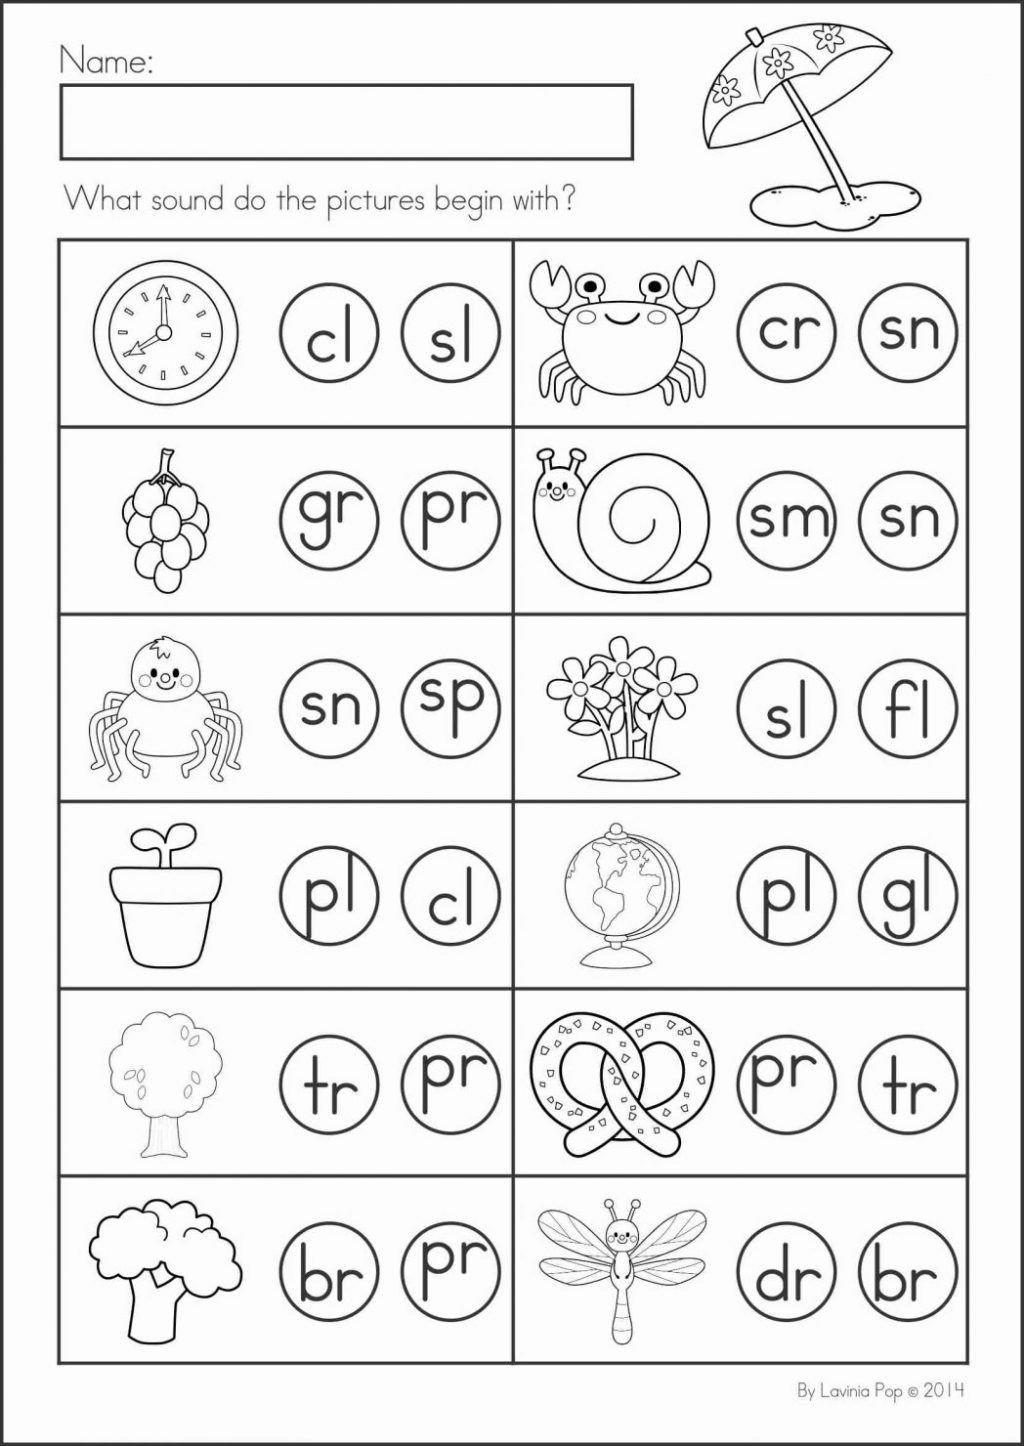 Consonant Blends Worksheets for Kindergarten Consonant Blends Worksheets for Kindergarten